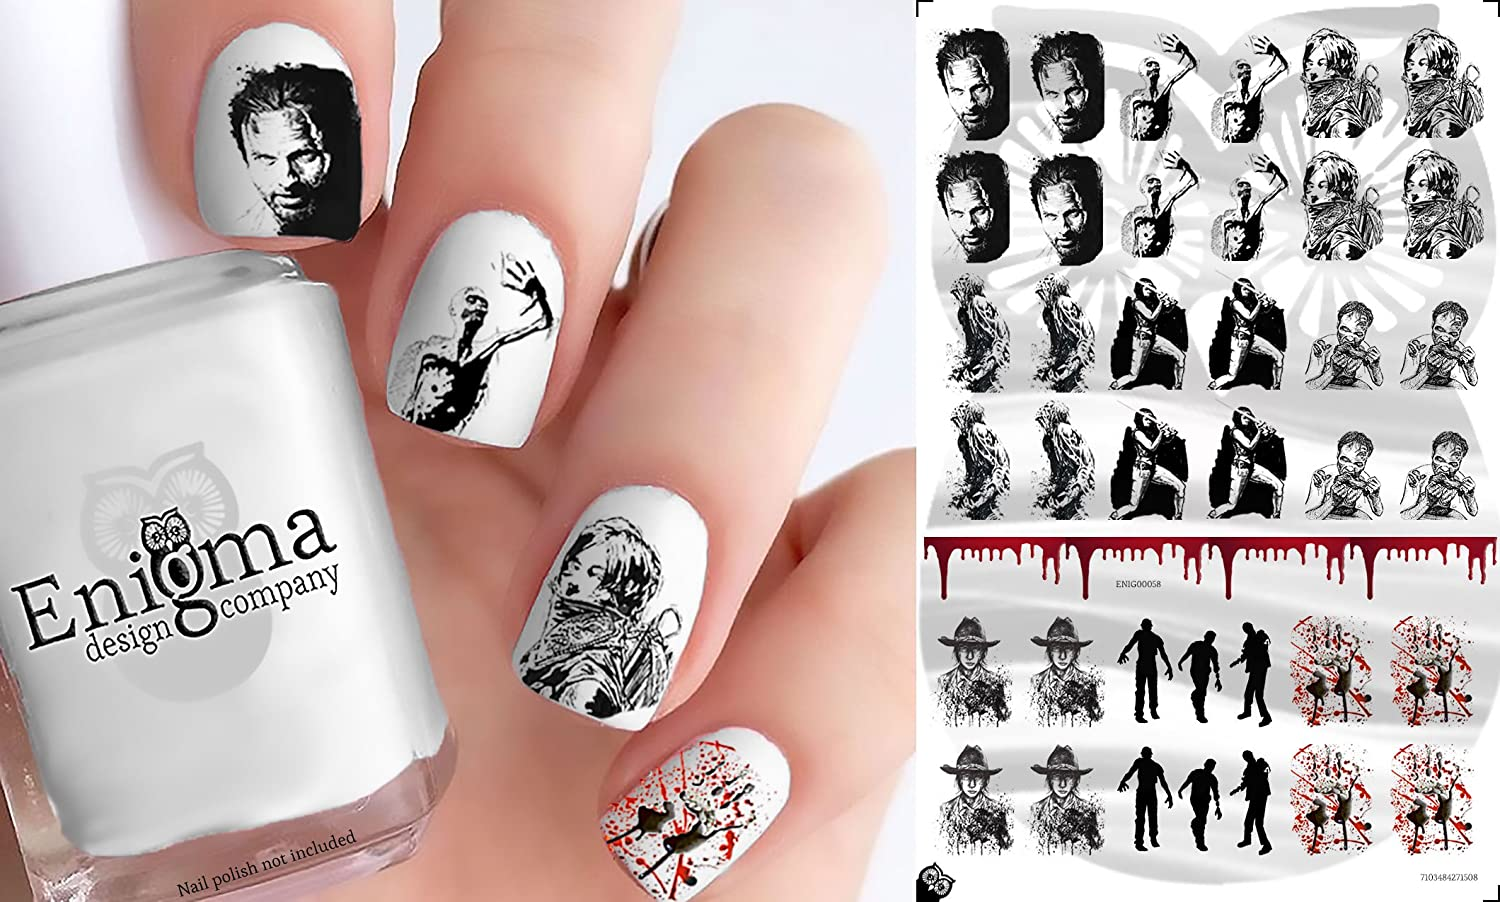 Amazon.com: The Walking Dead Nail Decals Large - Vol I (Set of 38 ...